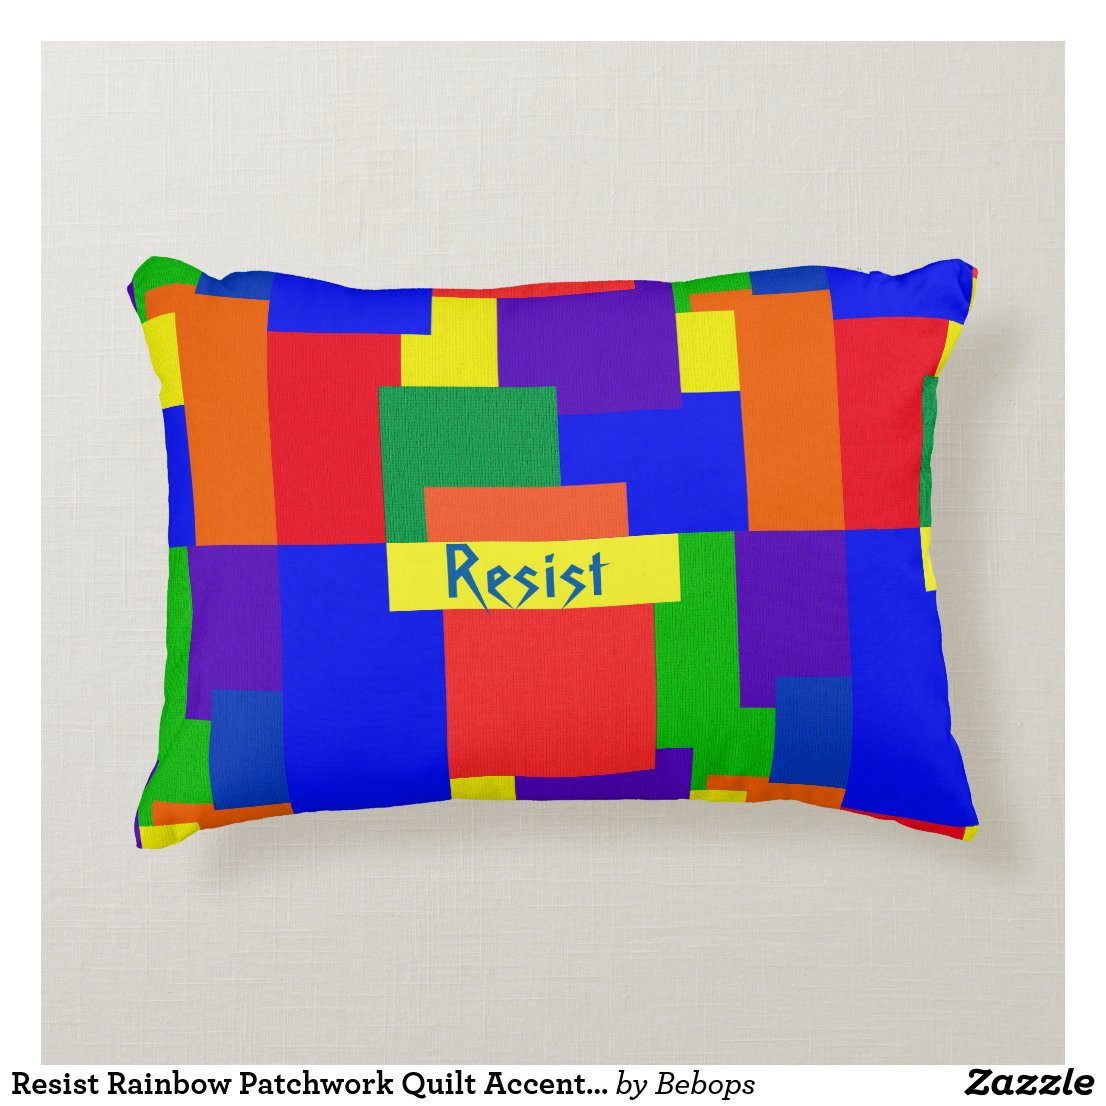 Resist Rainbow Patchwork Quilt Accent Pillow